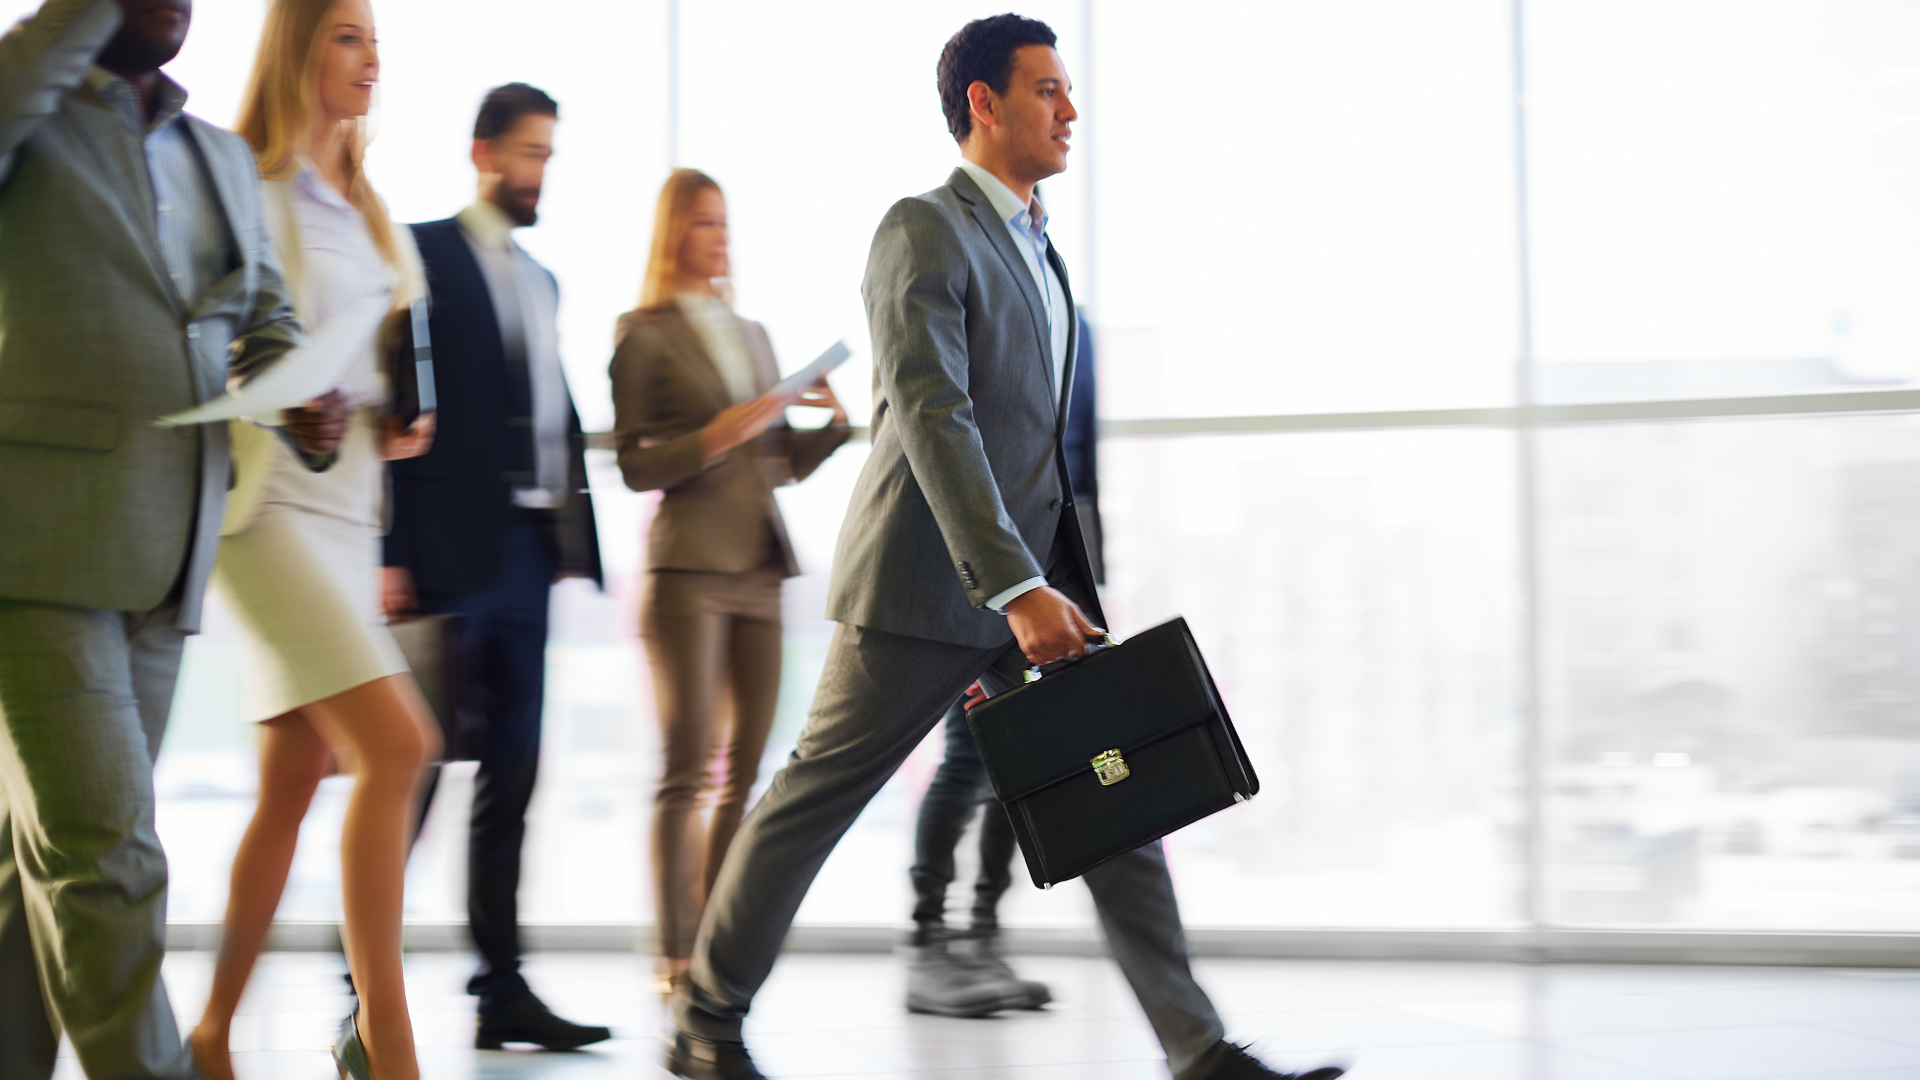 Learn to master prospecting with the Fearless Prospector course from Modern Sales Training